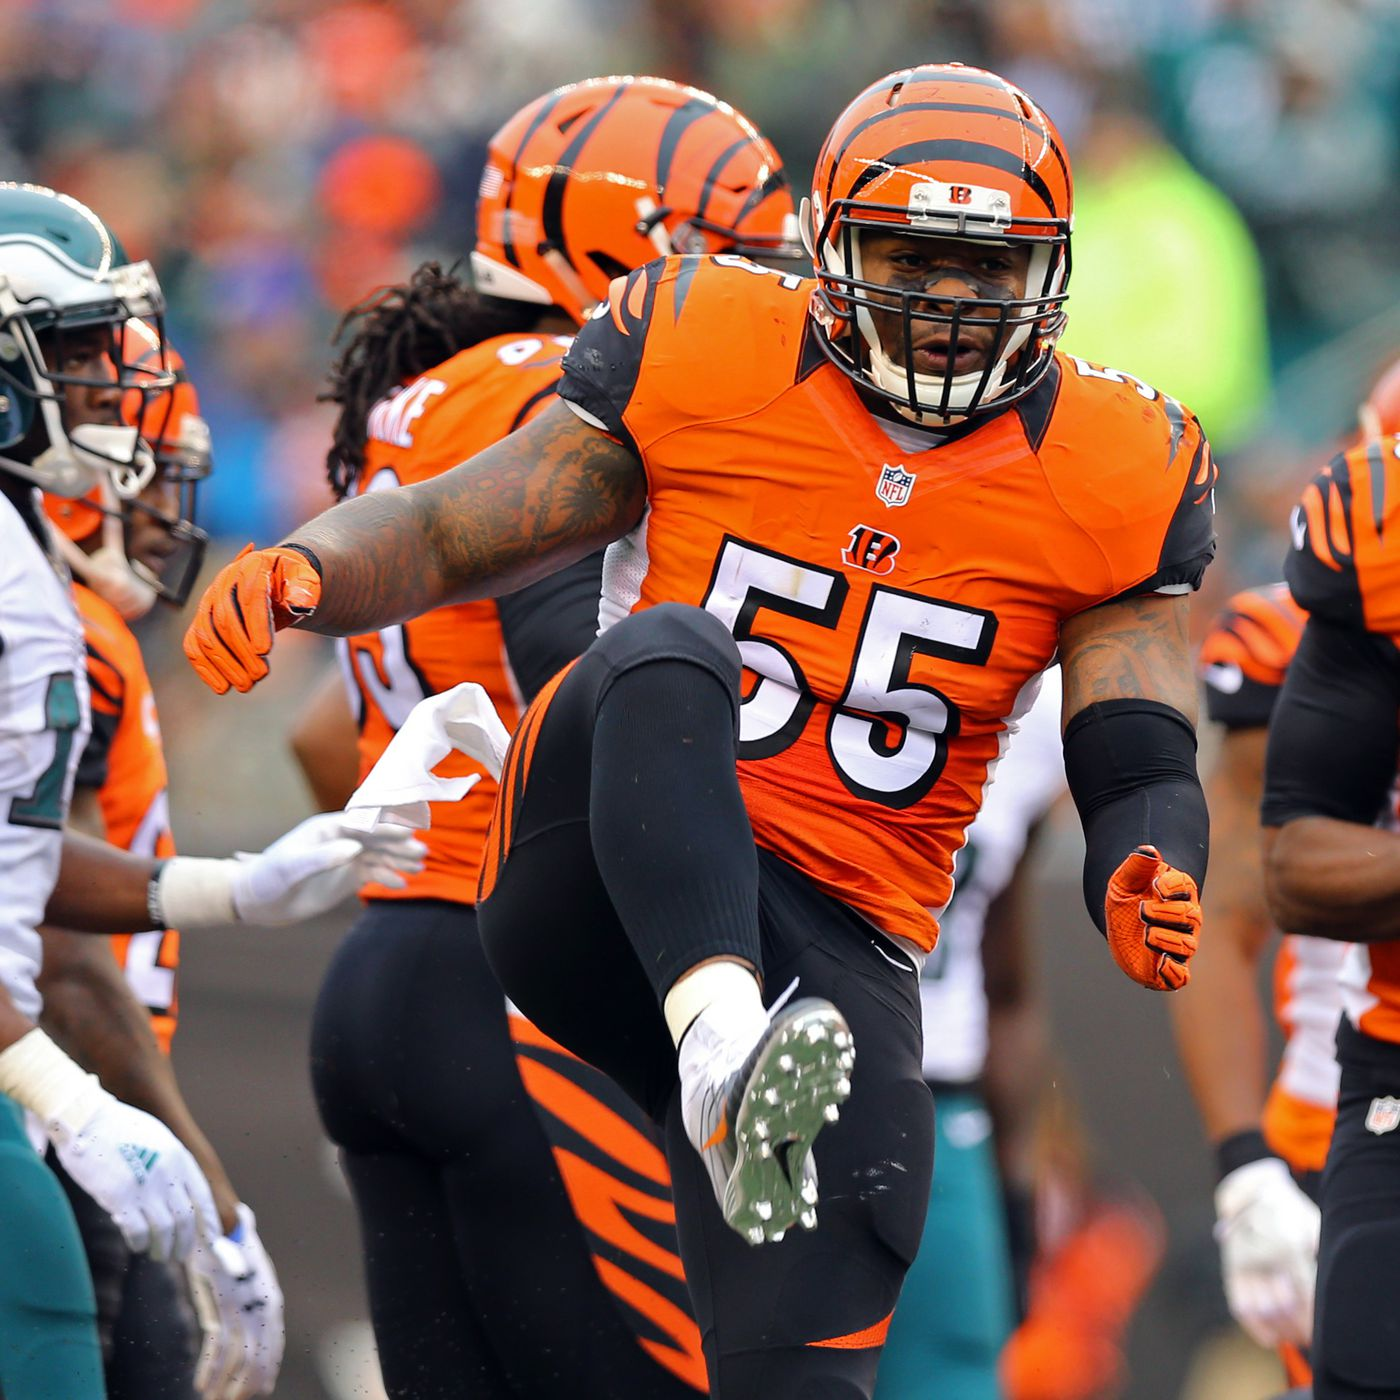 Vontaze Burfict Career Stats >> A Complete History Of Vontaze Burfict Being A Reckless Football